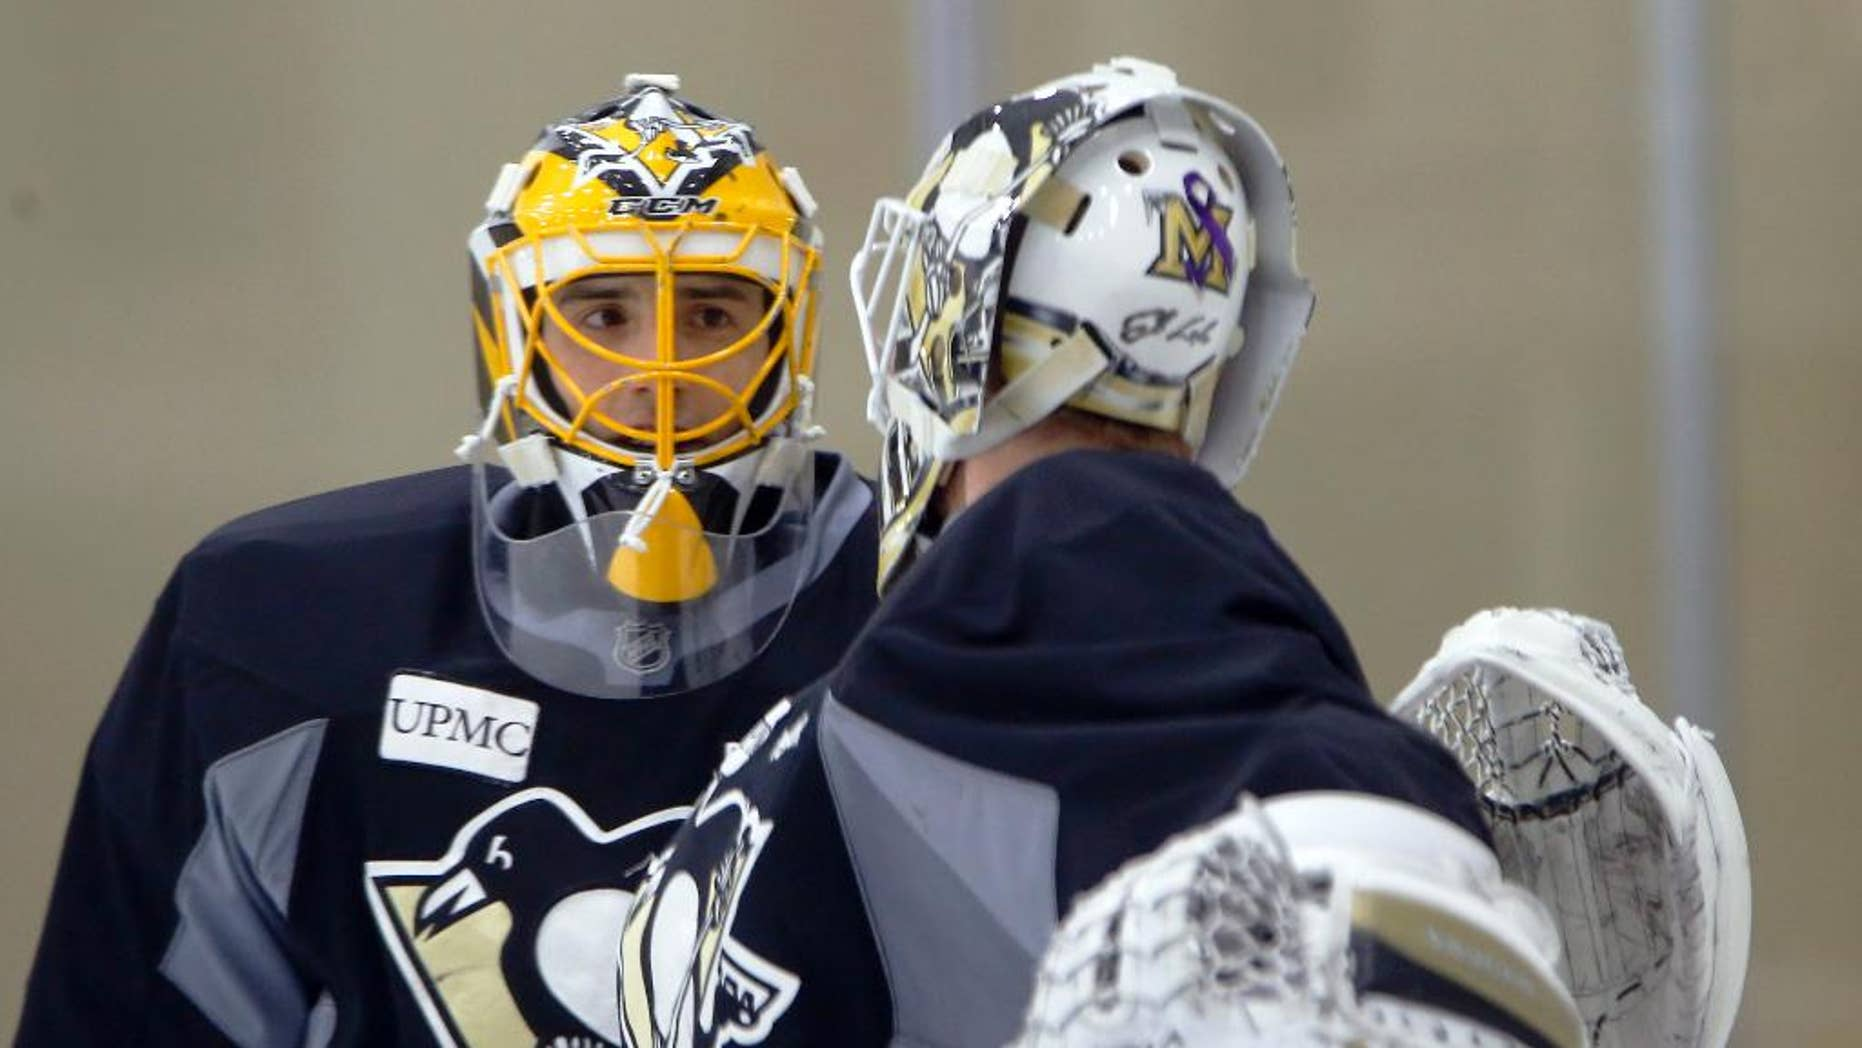 Pittsburgh Penguins goalie Marc-Andre Fleury, who has been out of action with concussion symptoms, talks with goalie Jeff Zatkoff during a practice session for the NHL hockey playoffs against the New York Rangers, Monday, April 11, 2016, at their practice facility in Cranberry, Pa. (AP Photo/Keith Srakocic)